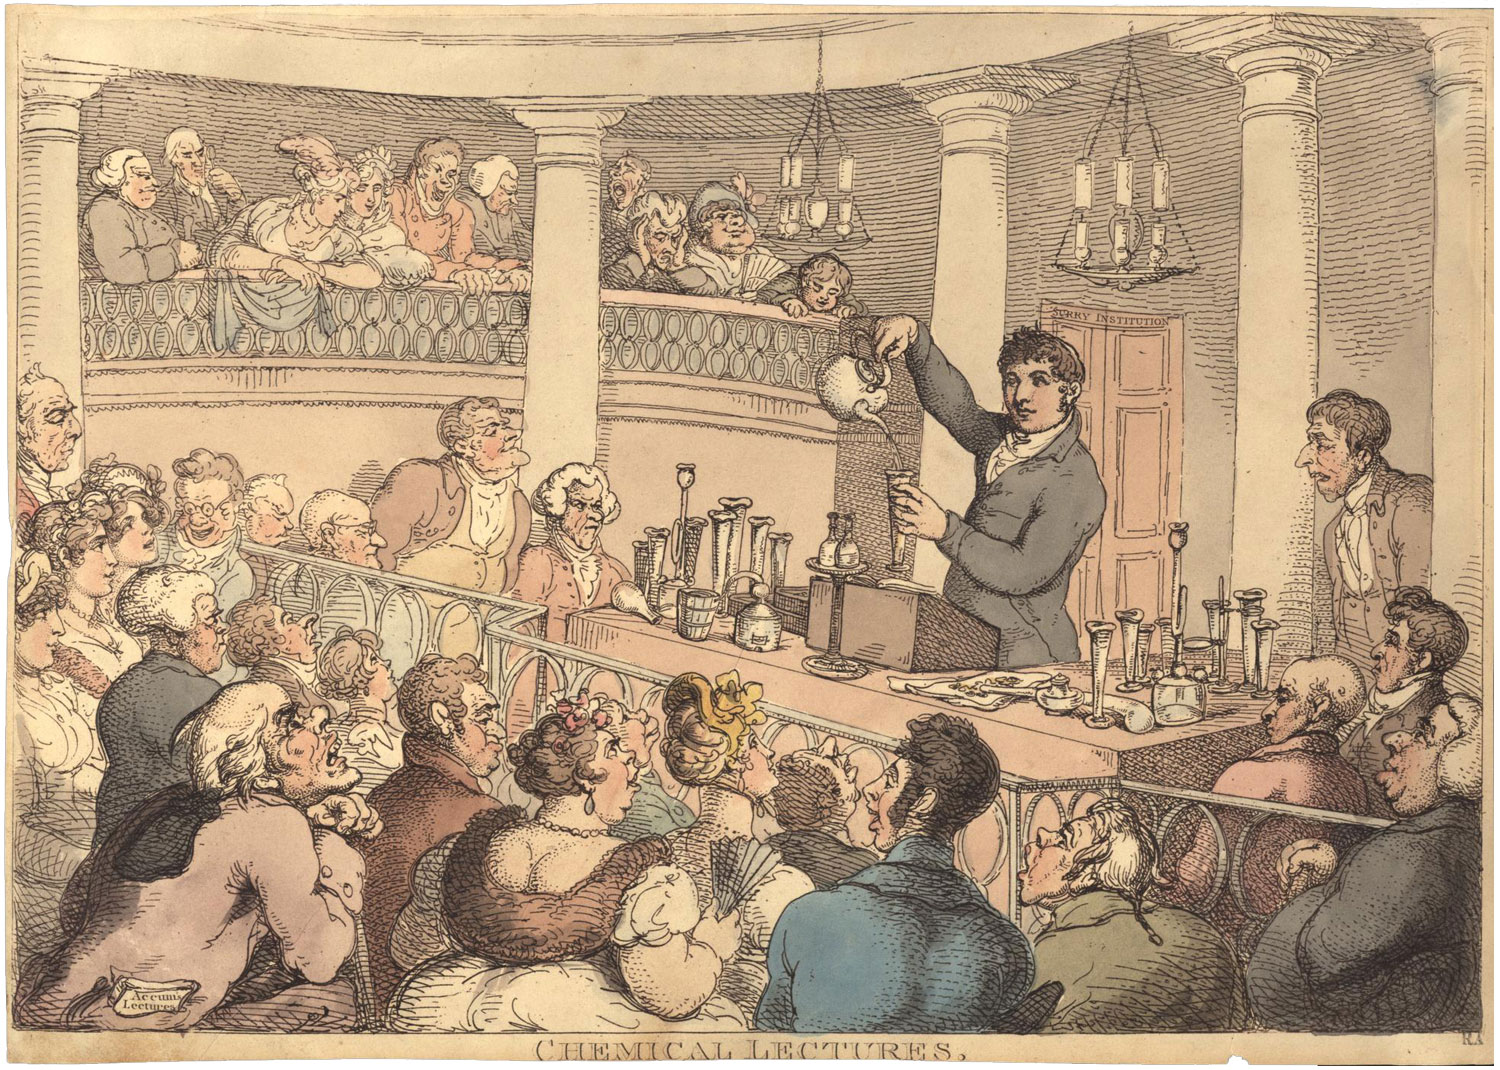 Engraving by Thomas Rowlandsonshowing a chemical lecture [after 1809] © Wikimedia Commons